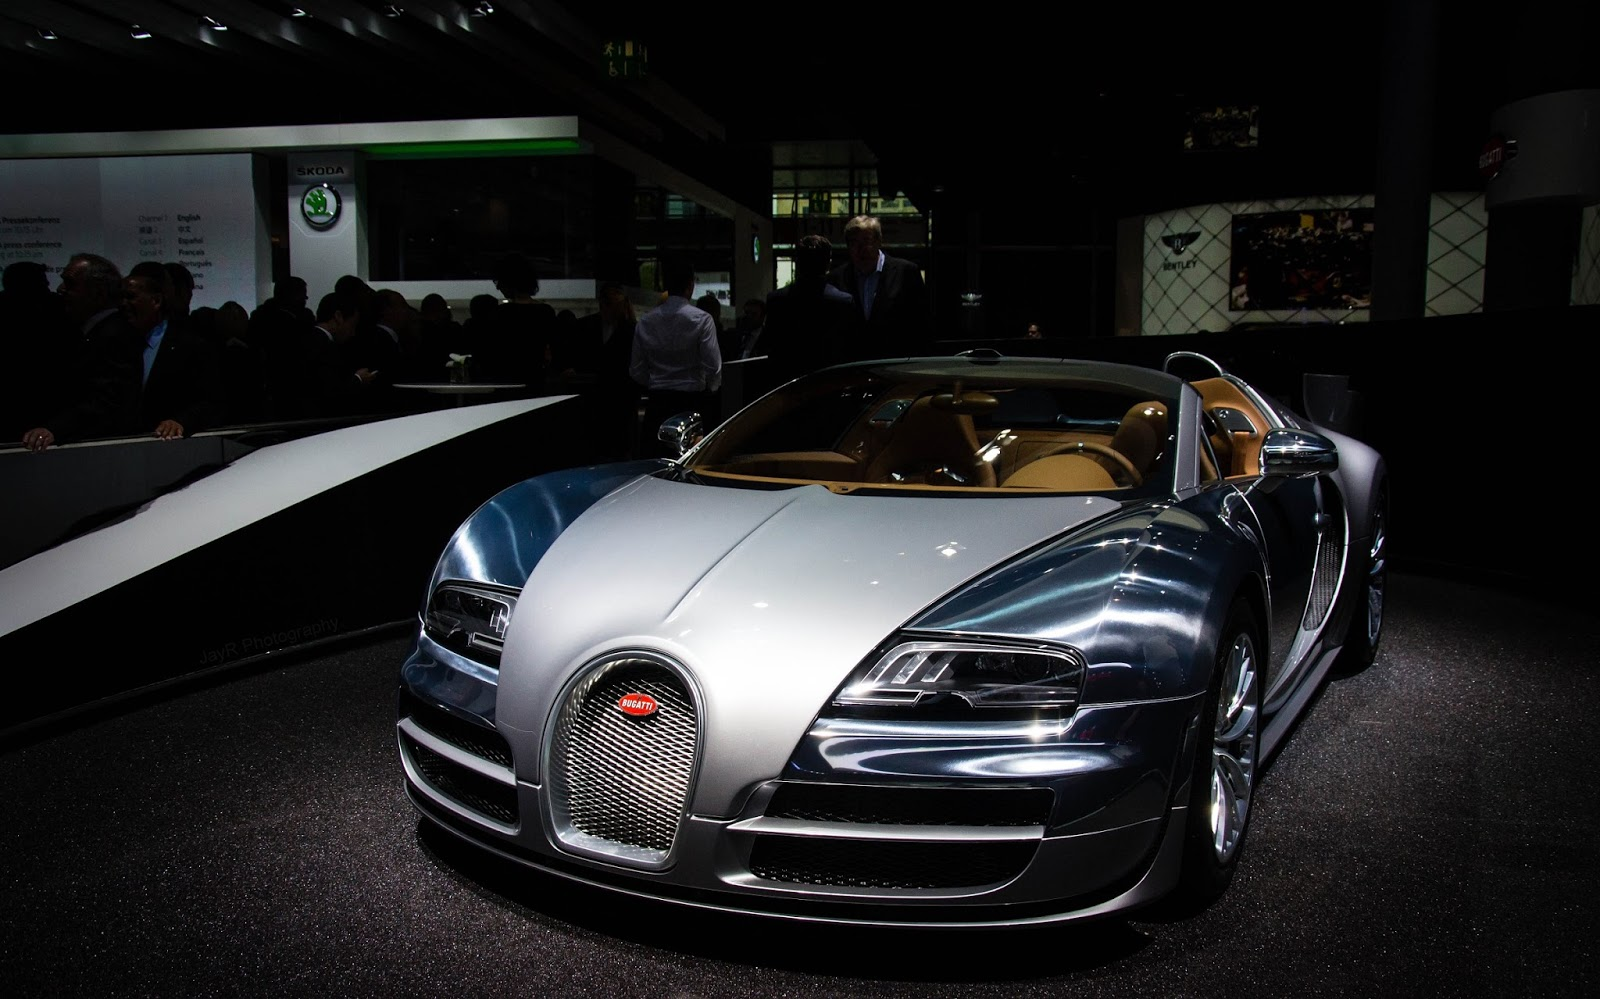 neon bugatti for pinterest - photo #33